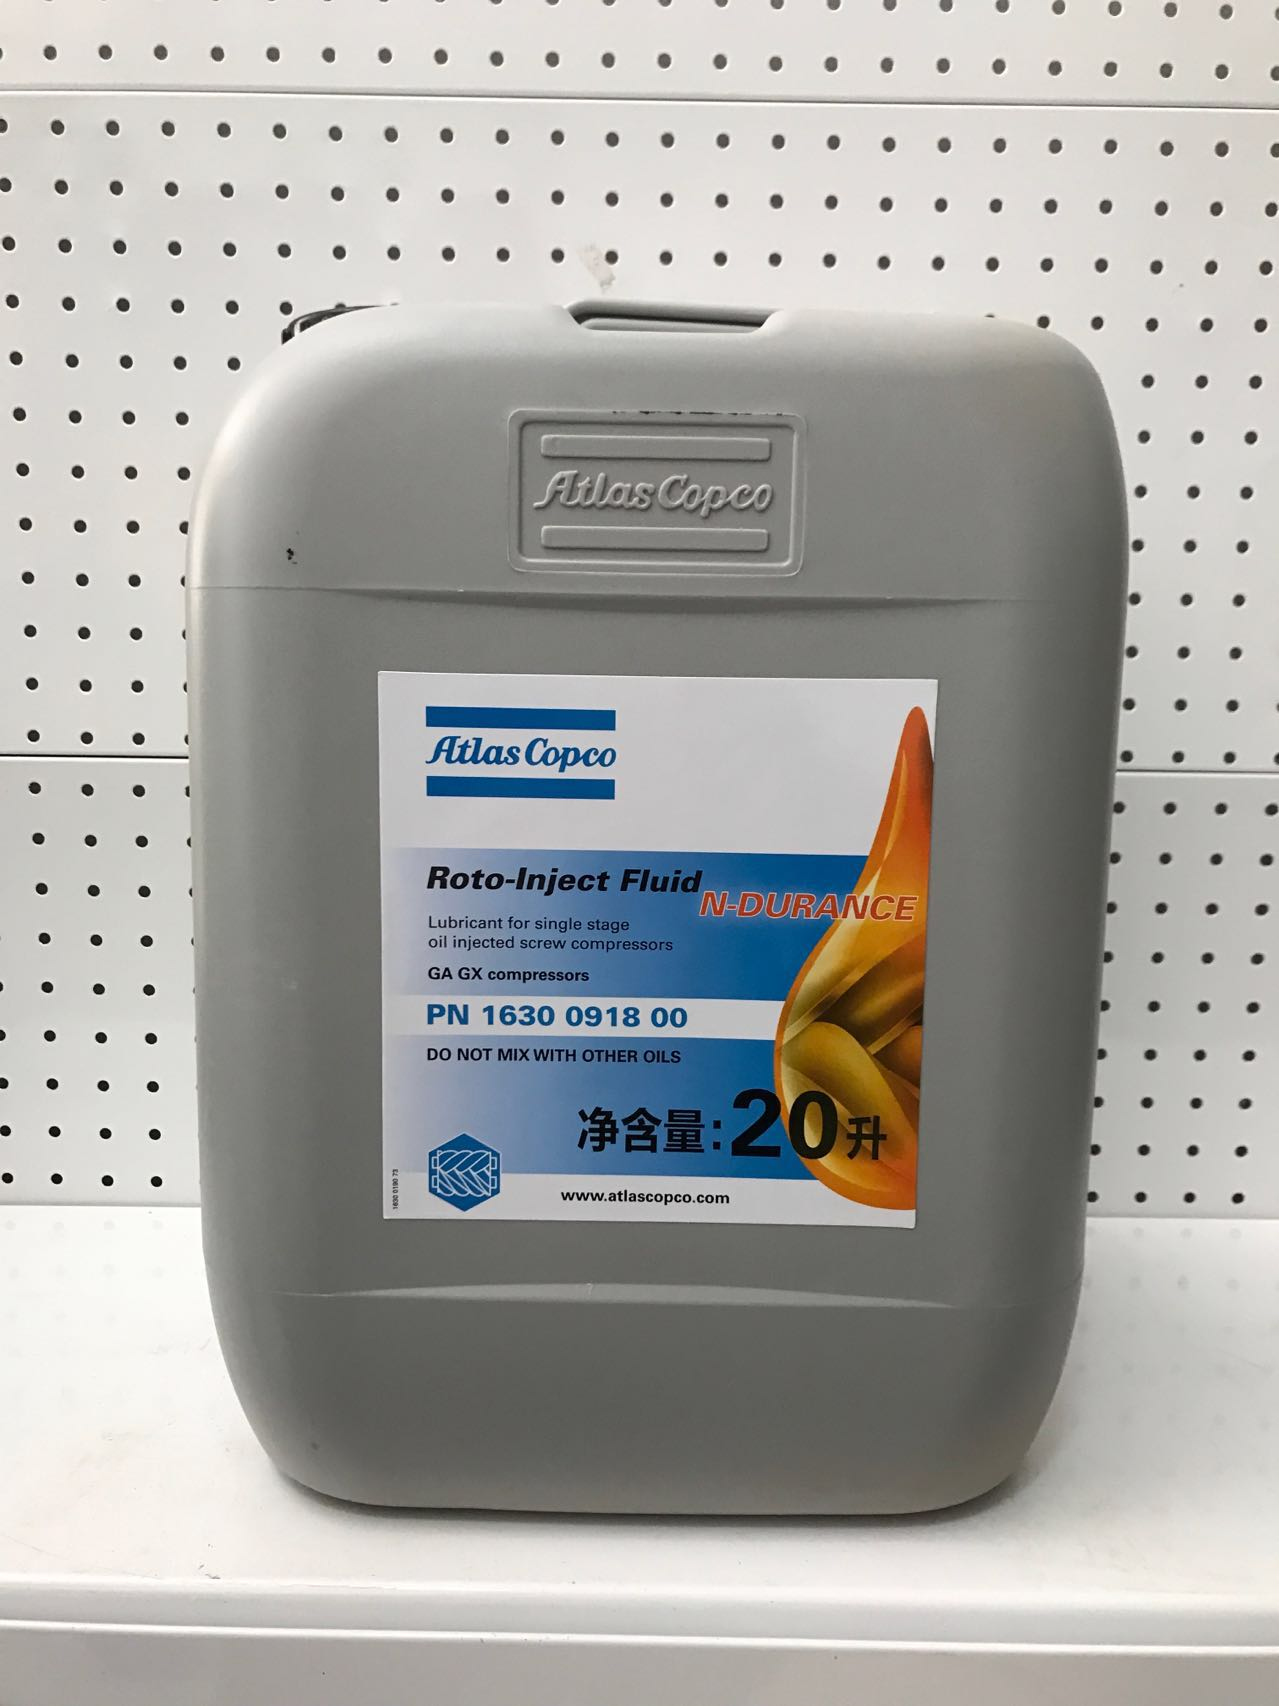 Roto-Inject Fluid Durance atlas copco lubricant oil 1630091800